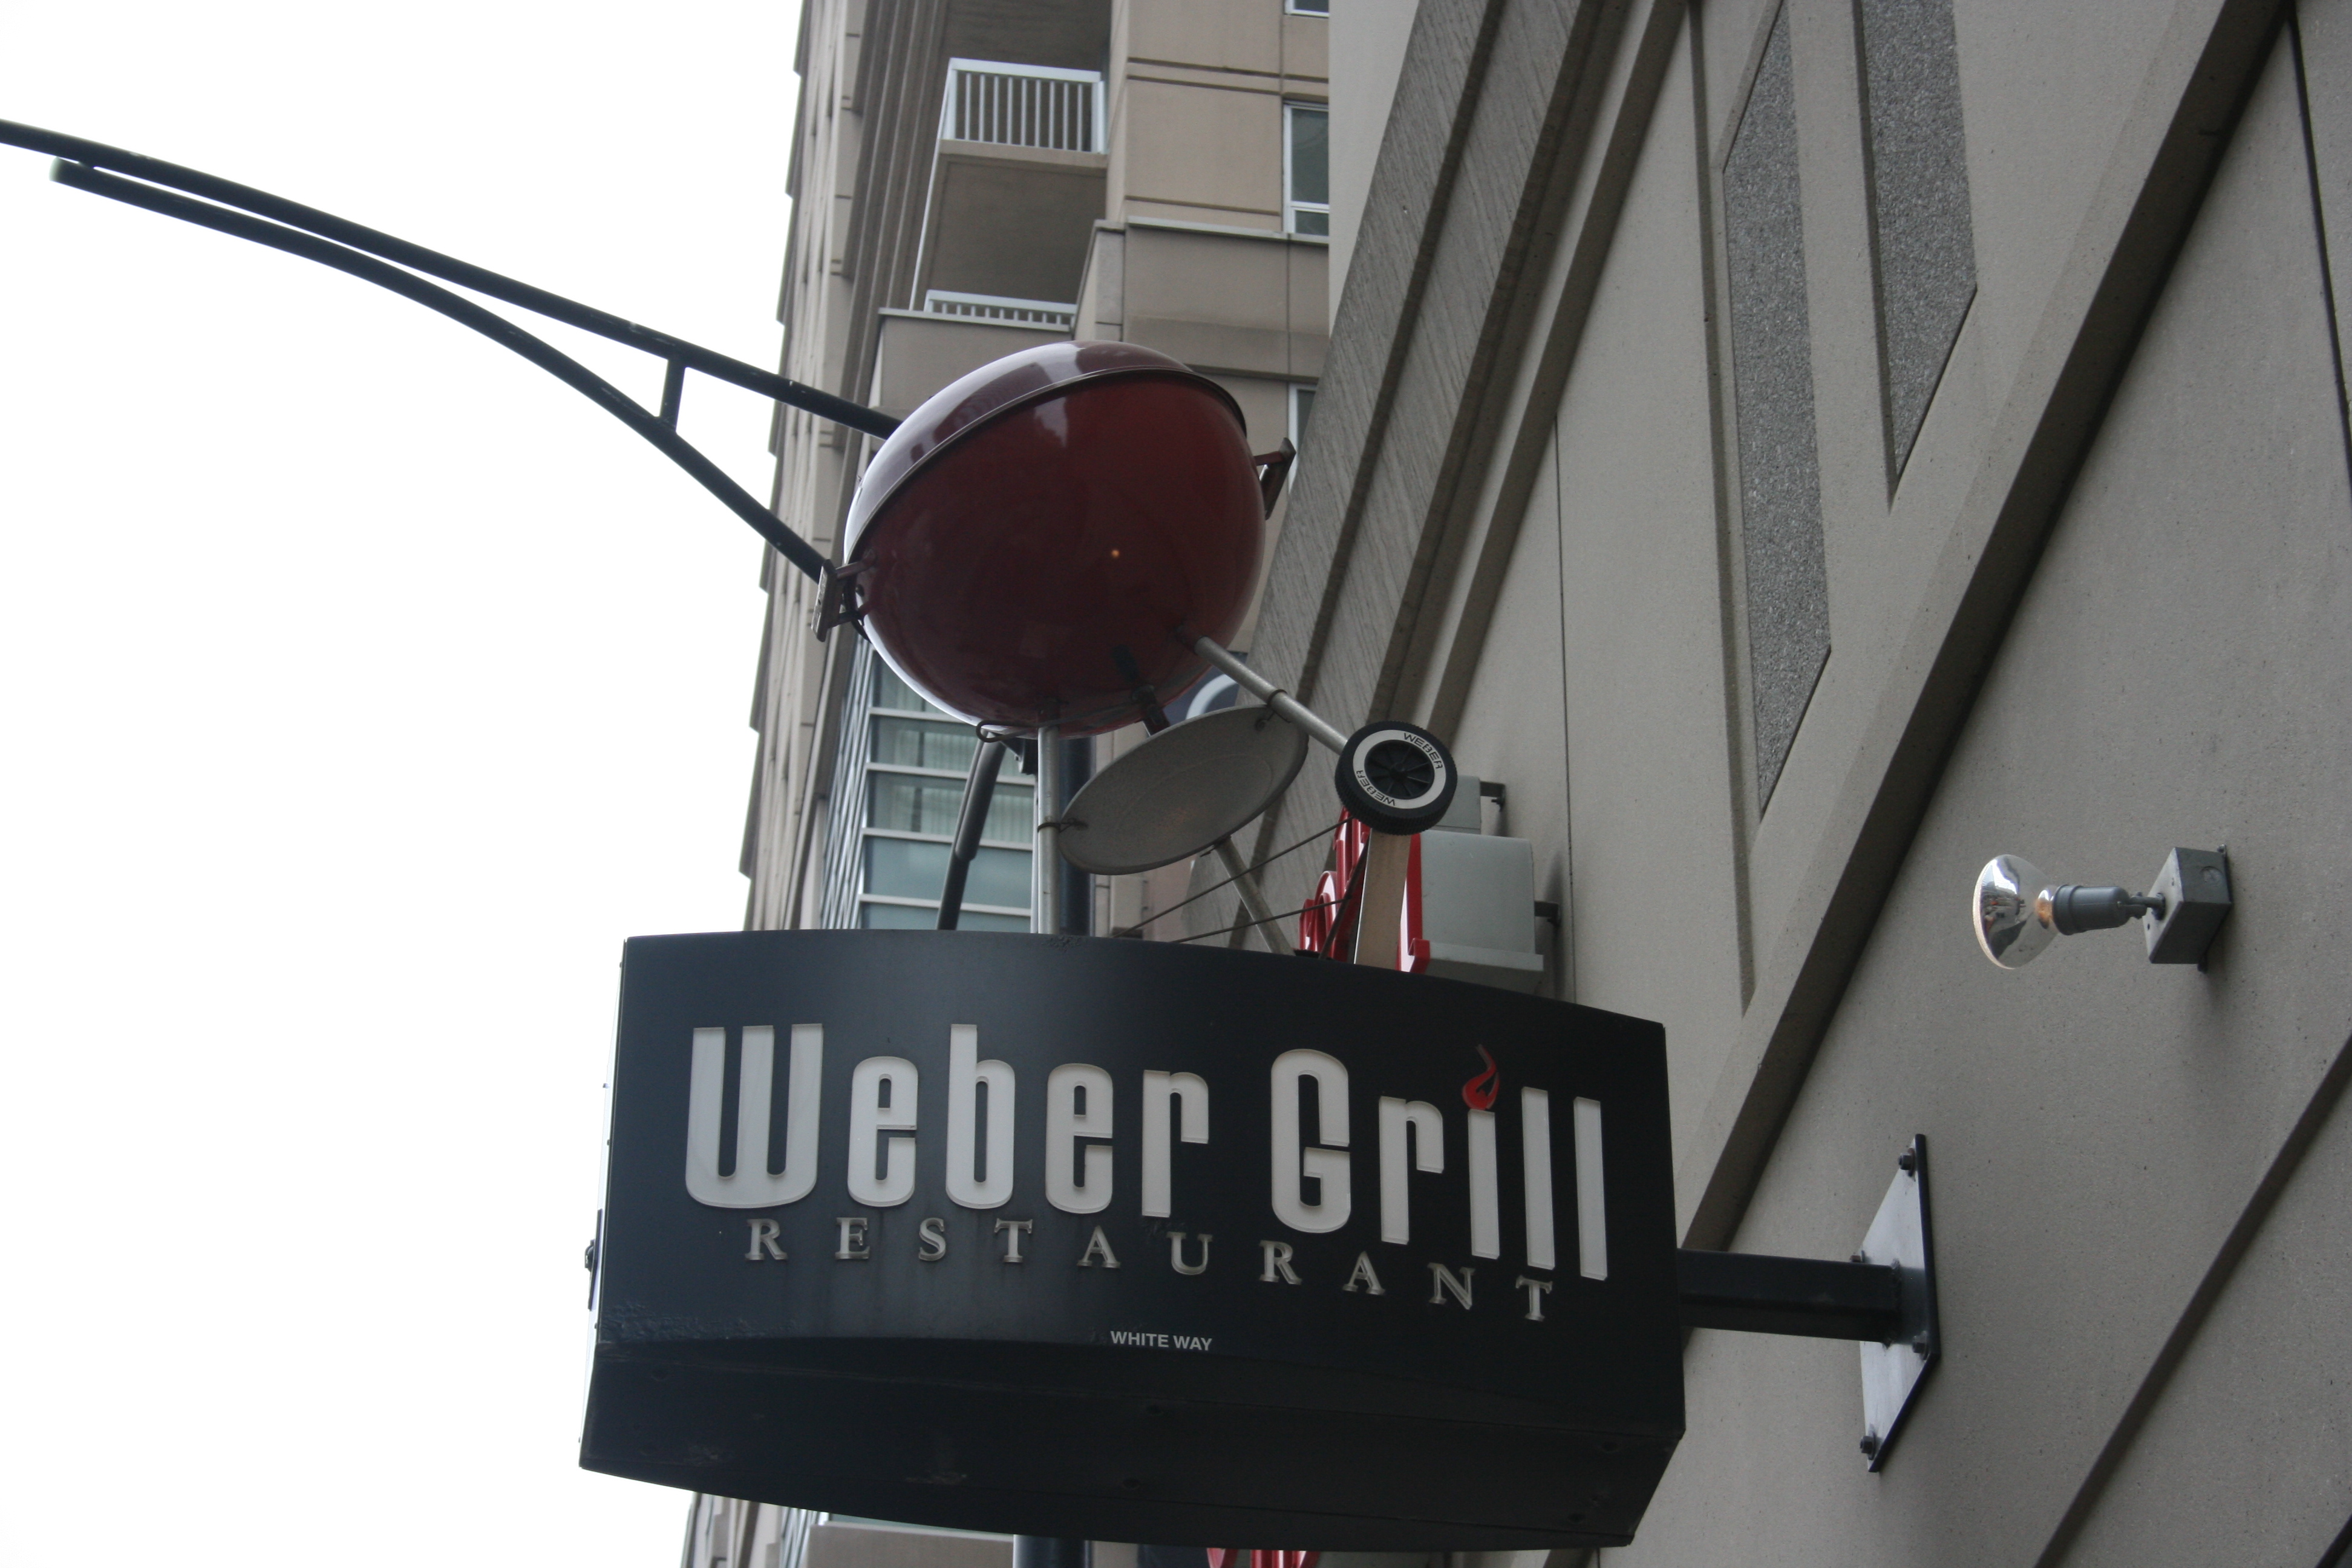 dating weber grill